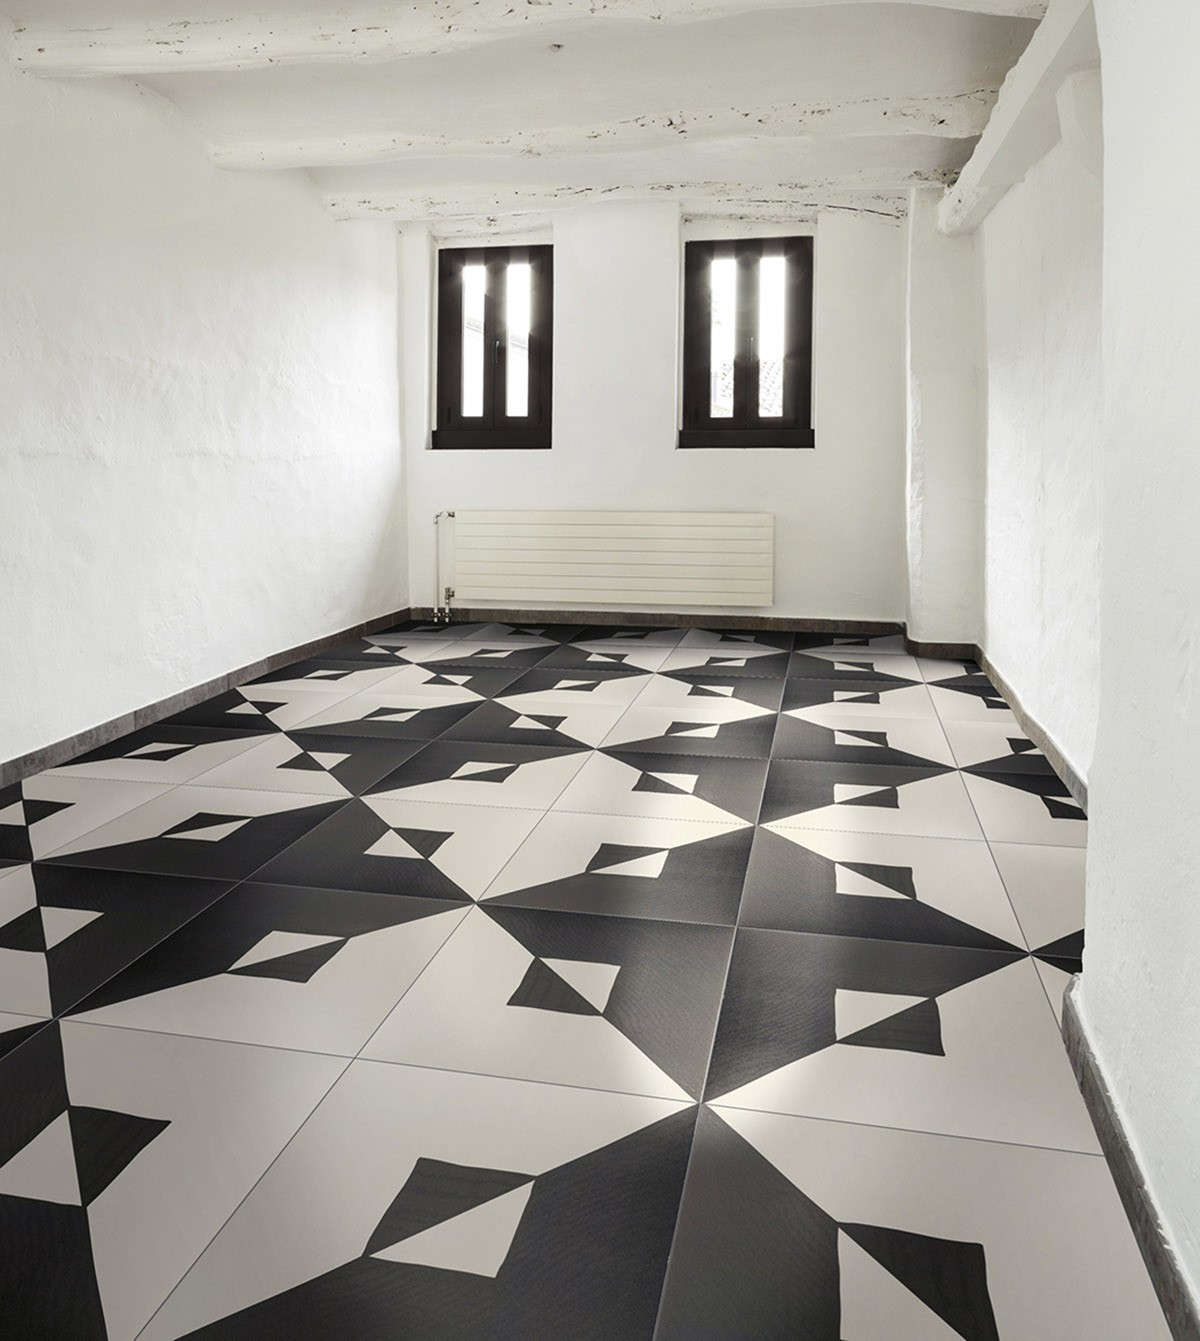 Carreau ciment noir et blanc stunning as de carreaux for Carrelage blanc et noir